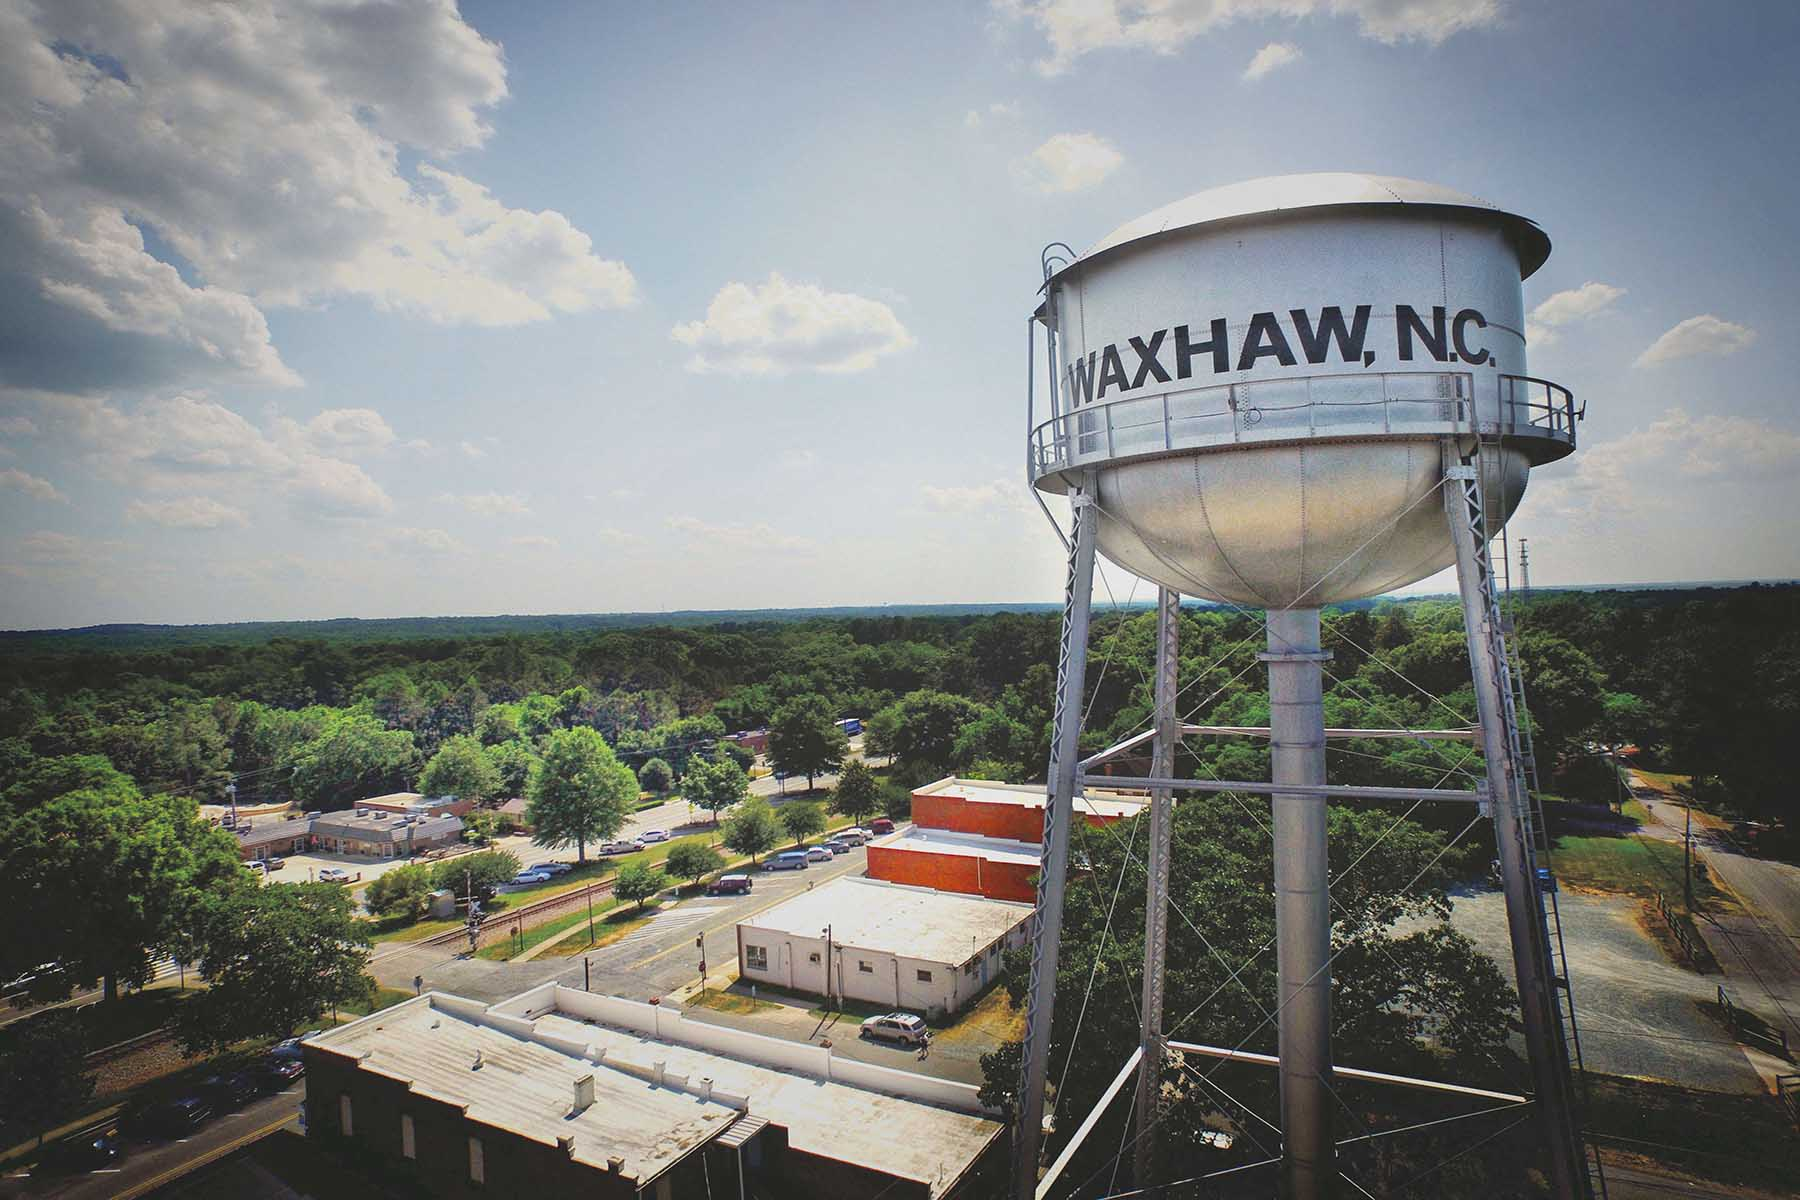 8 Reasons Waxhaw, NC Is a Wonderful Small Town to Call Home